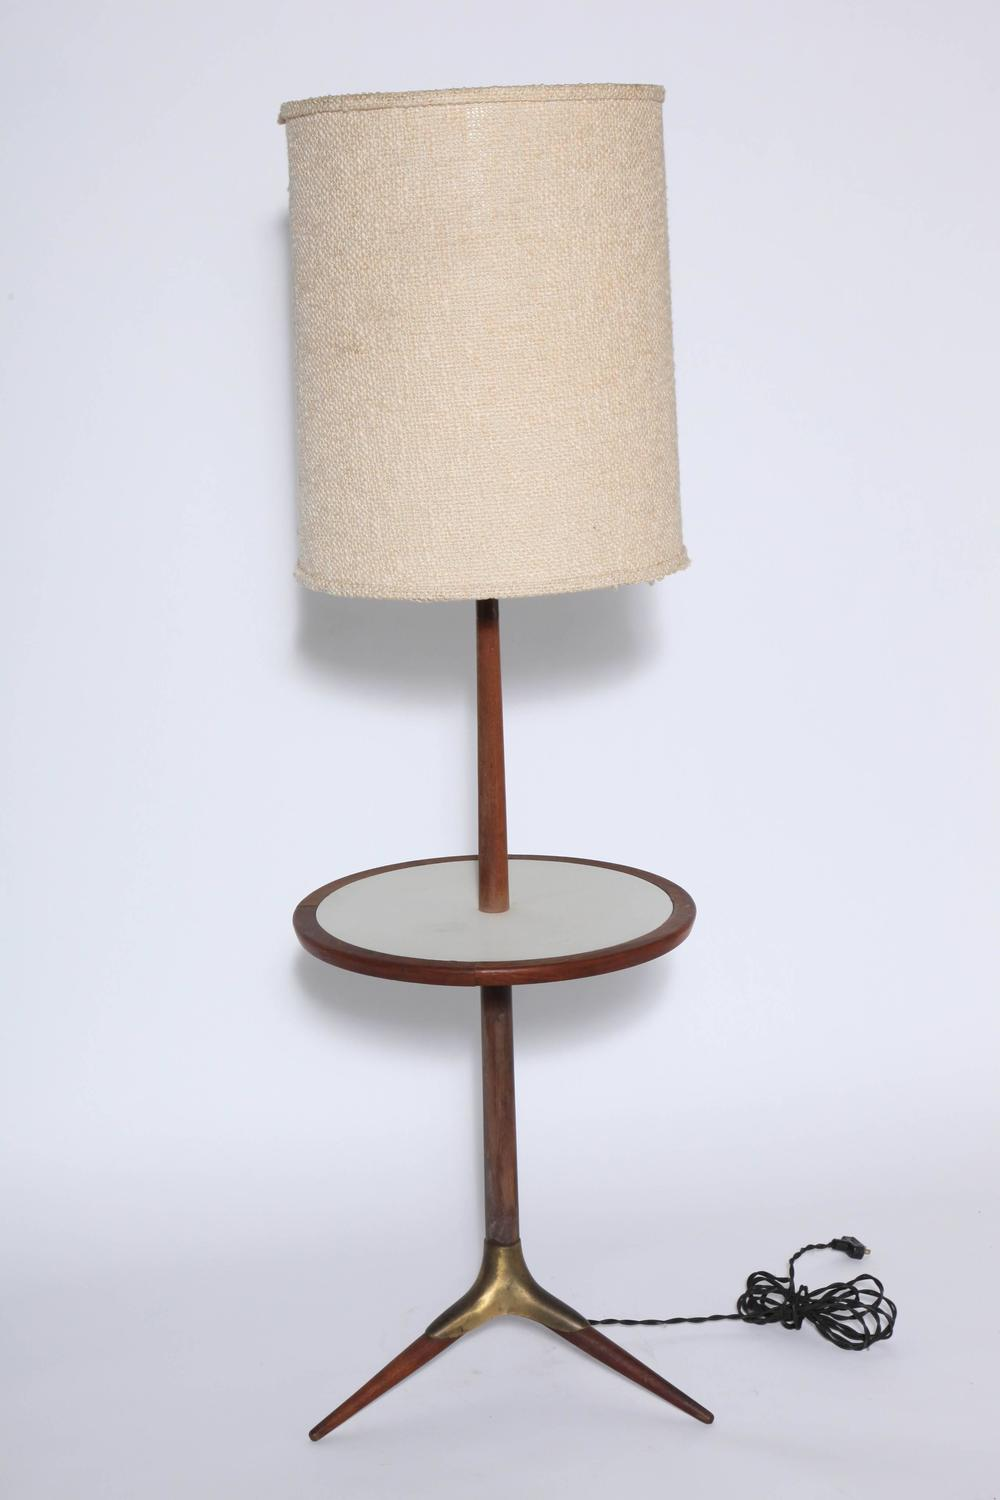 early gerald thurston tripod floor lamp and side table at 1stdibs. Black Bedroom Furniture Sets. Home Design Ideas